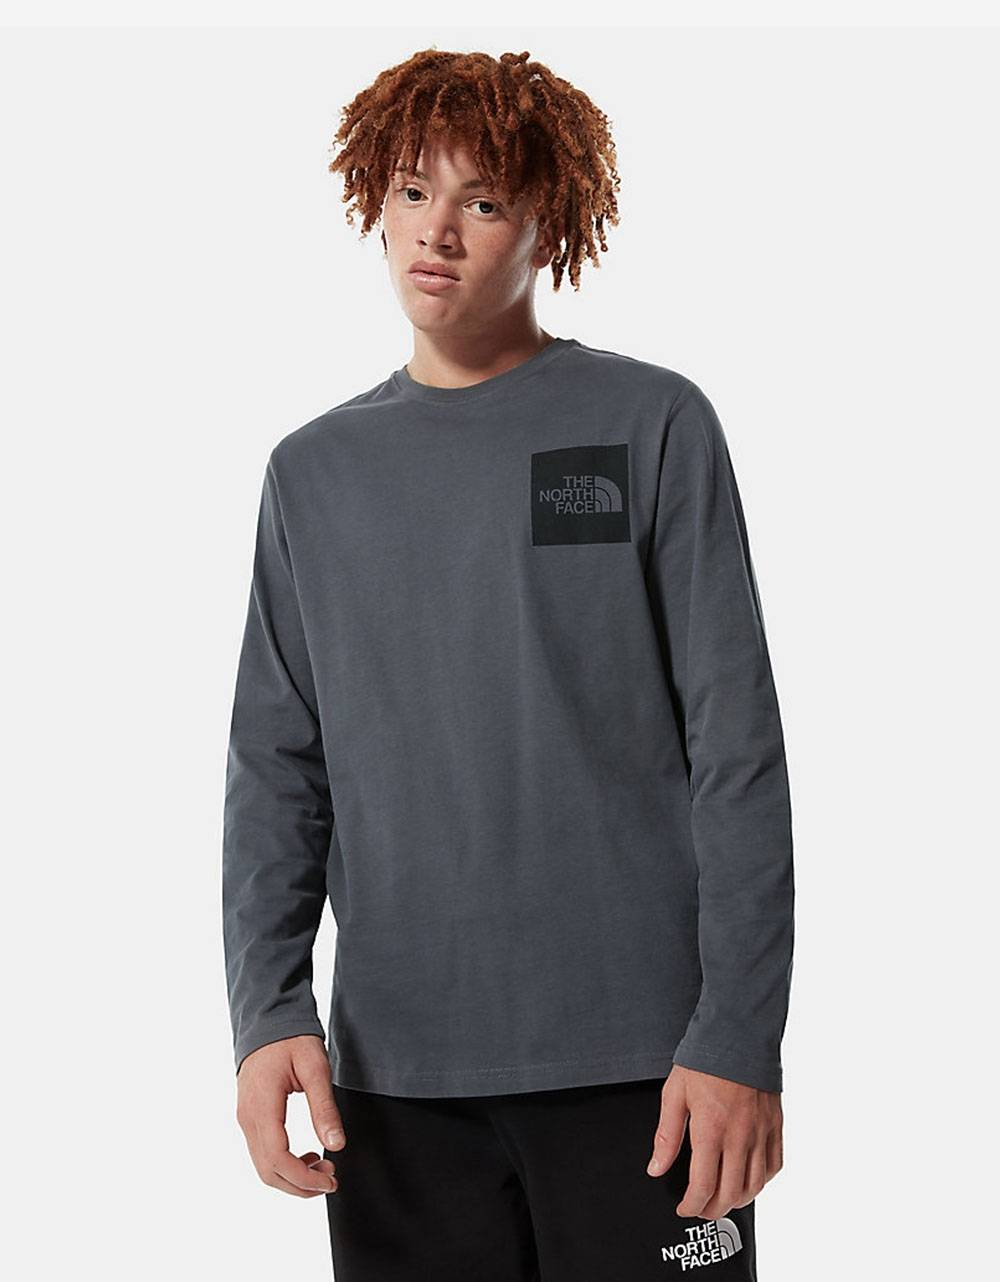 The North Face Fine longsleeve - vanadis grey THE NORTH FACE T-shirt 40,16 €